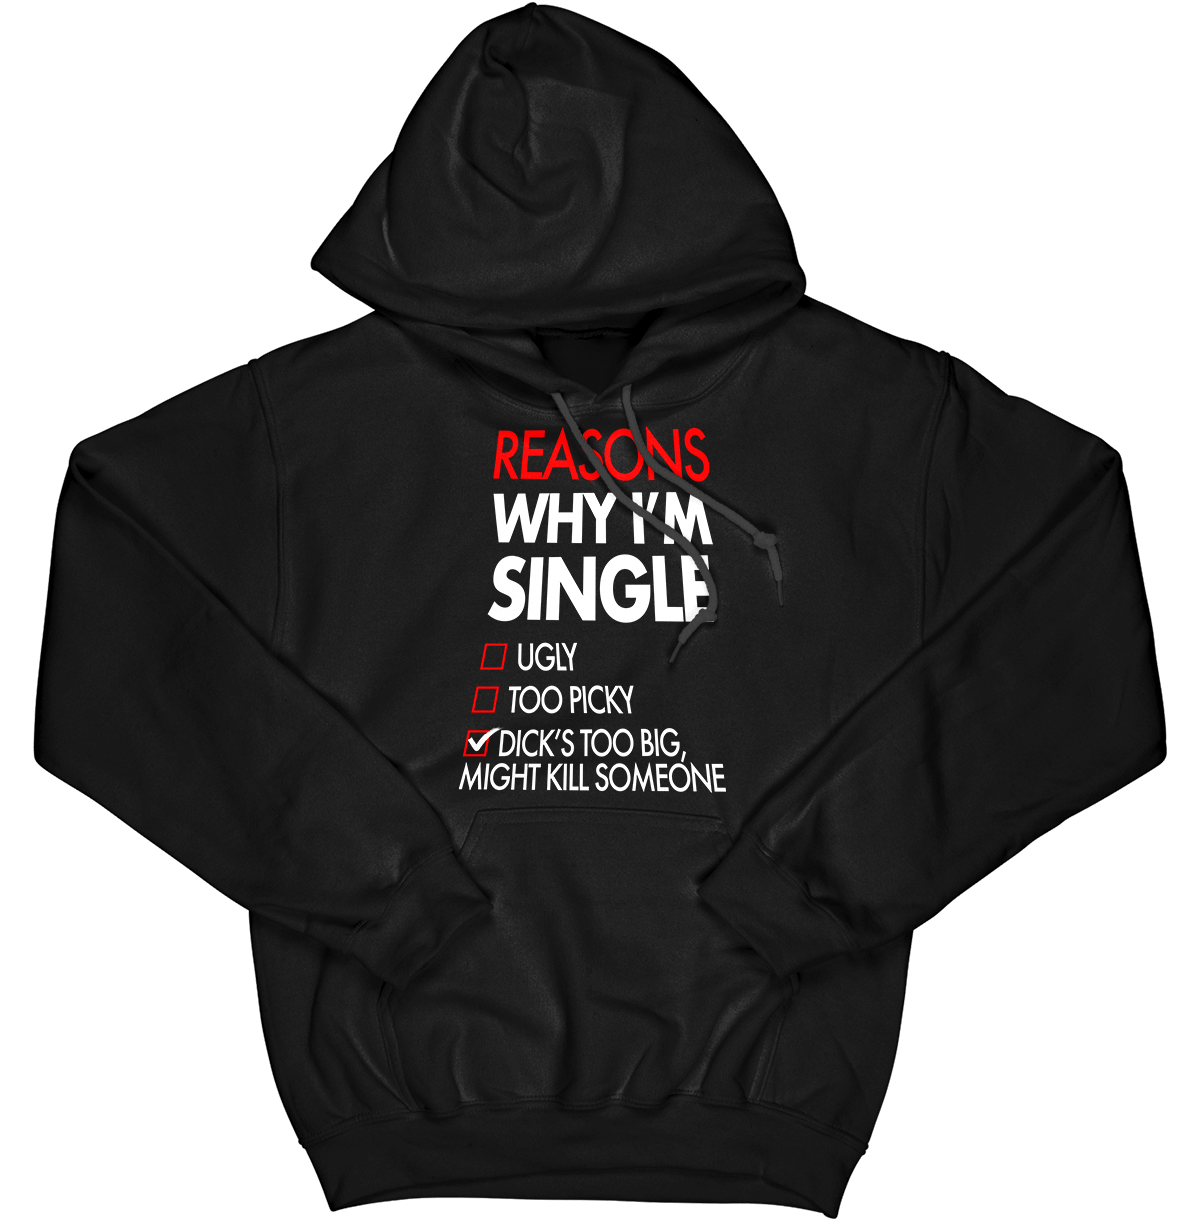 Reasons Why I'm Single Hoodie